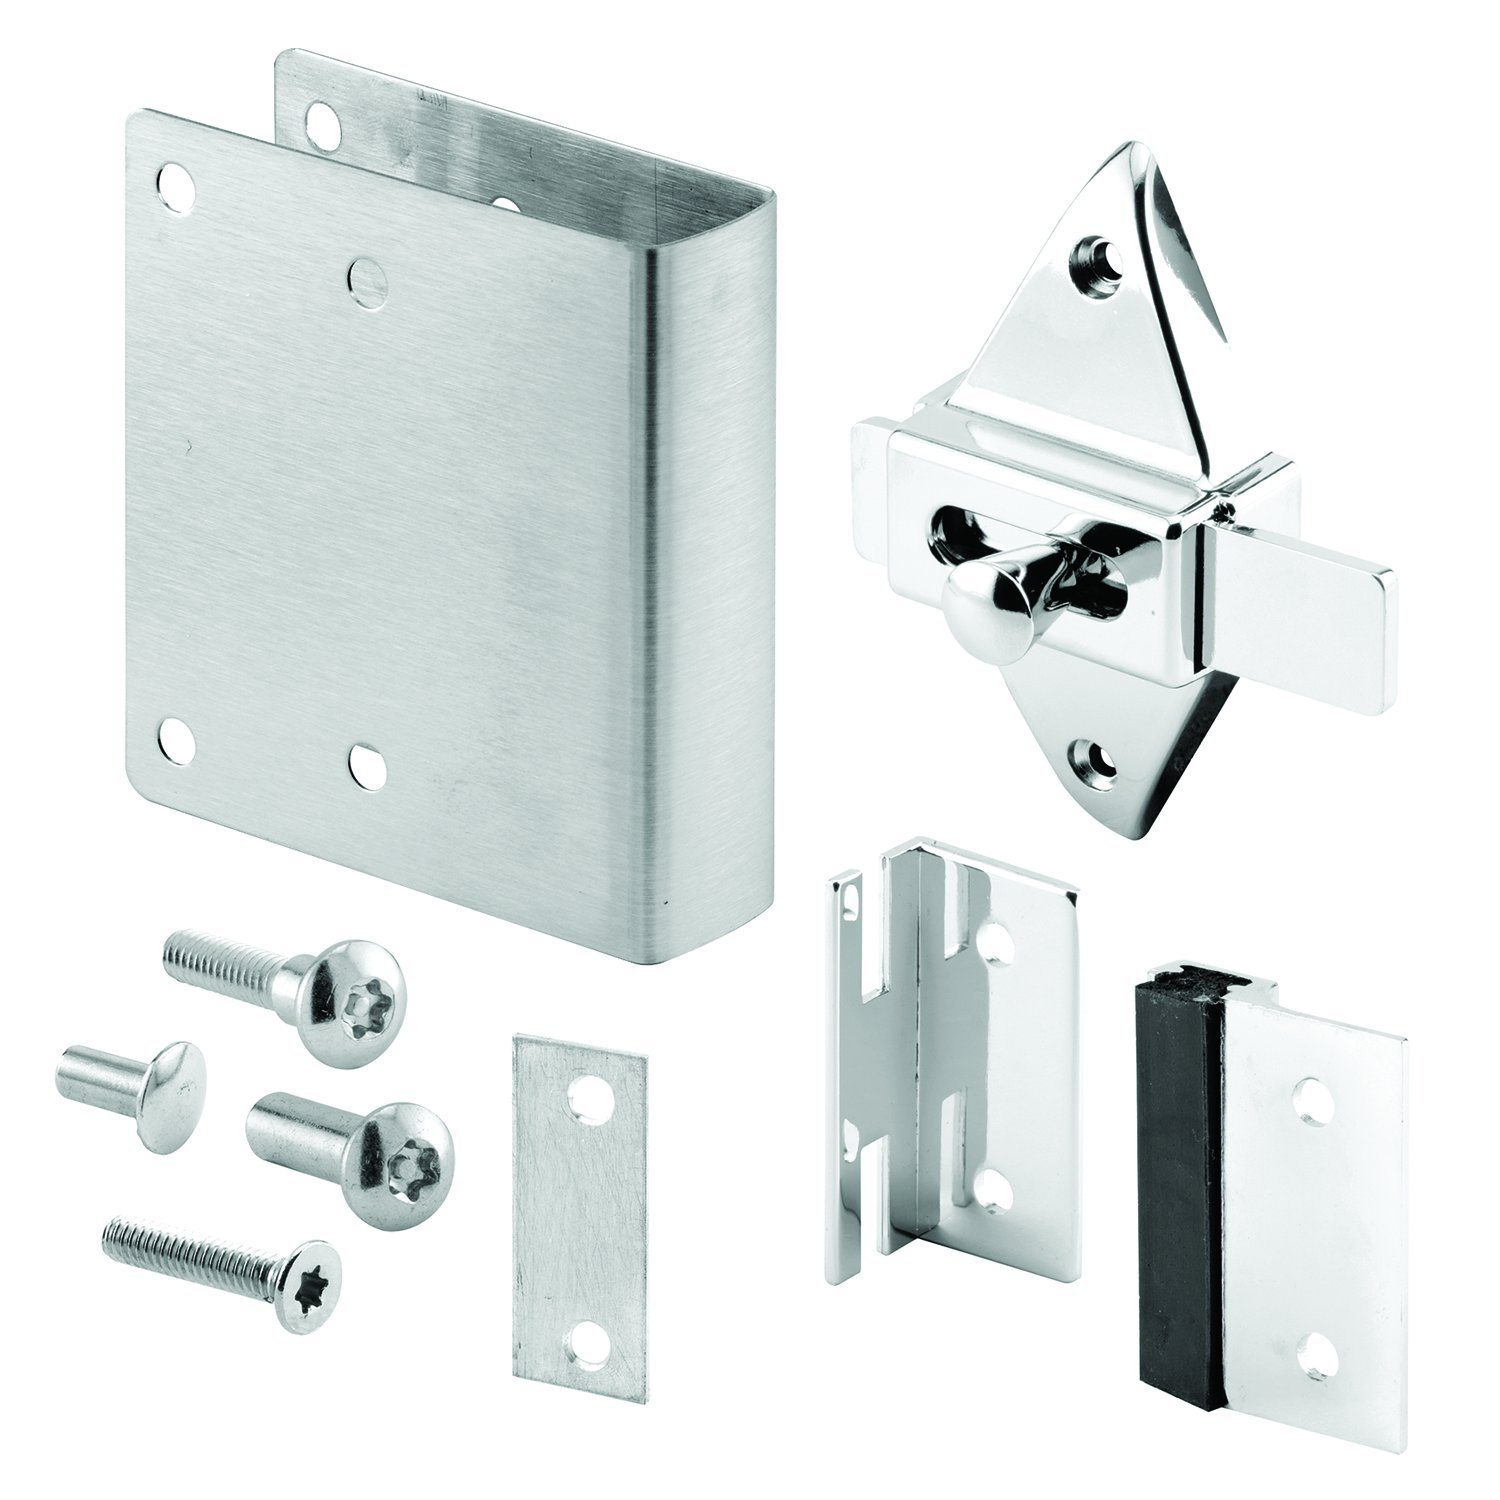 Sentry Supply 656-1003 Stainless Steel & Chrome Plated Zamak Square Edge Qwik Fix Kit for 1'' Doors